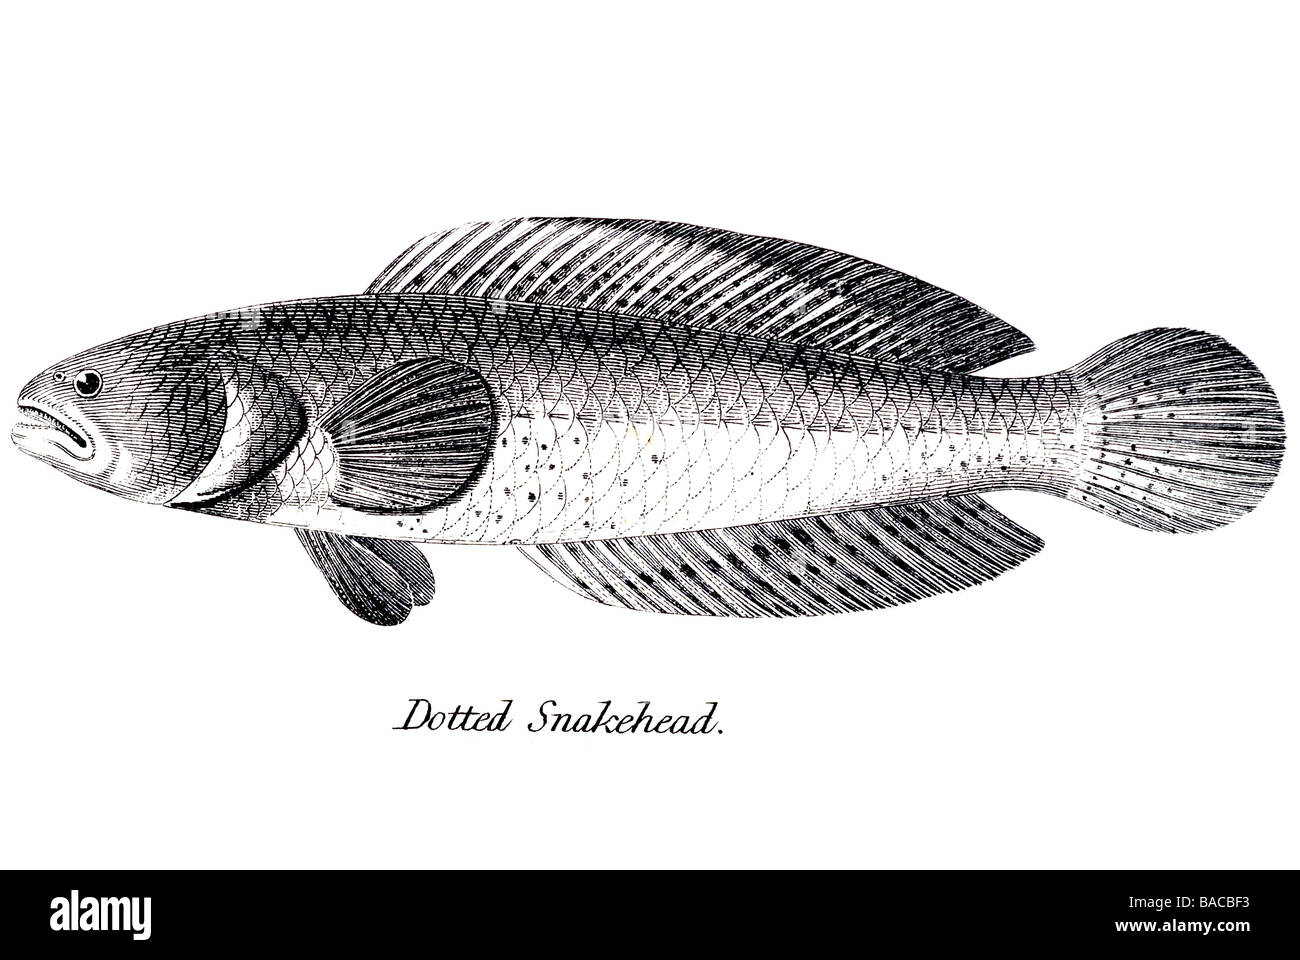 Dotted snakehead channidae freshwater fish snakeheads for Predatory freshwater fish